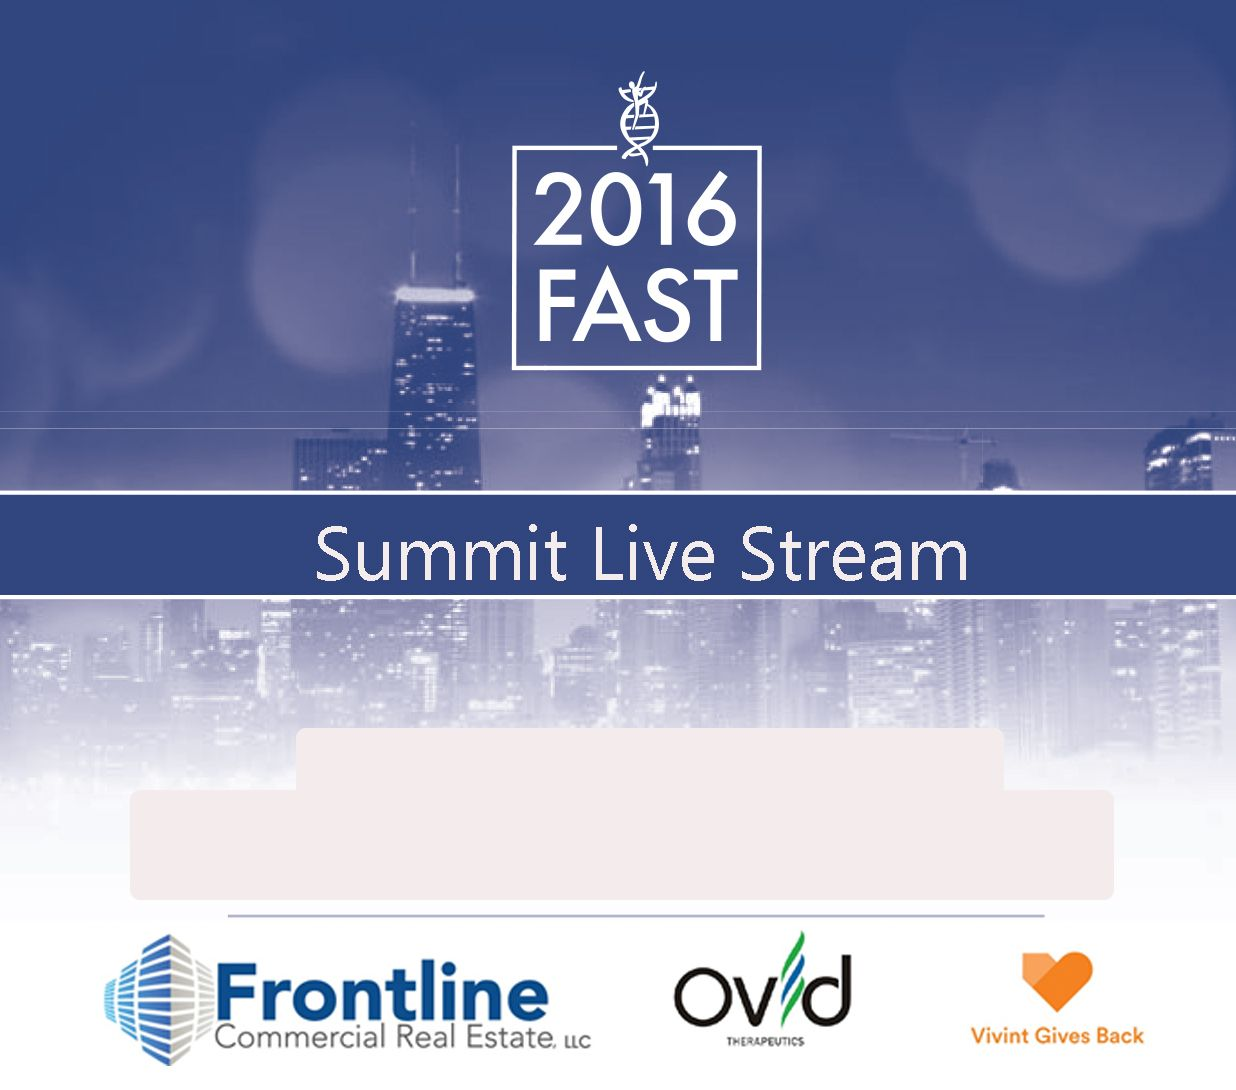 FAST Summit Live stream